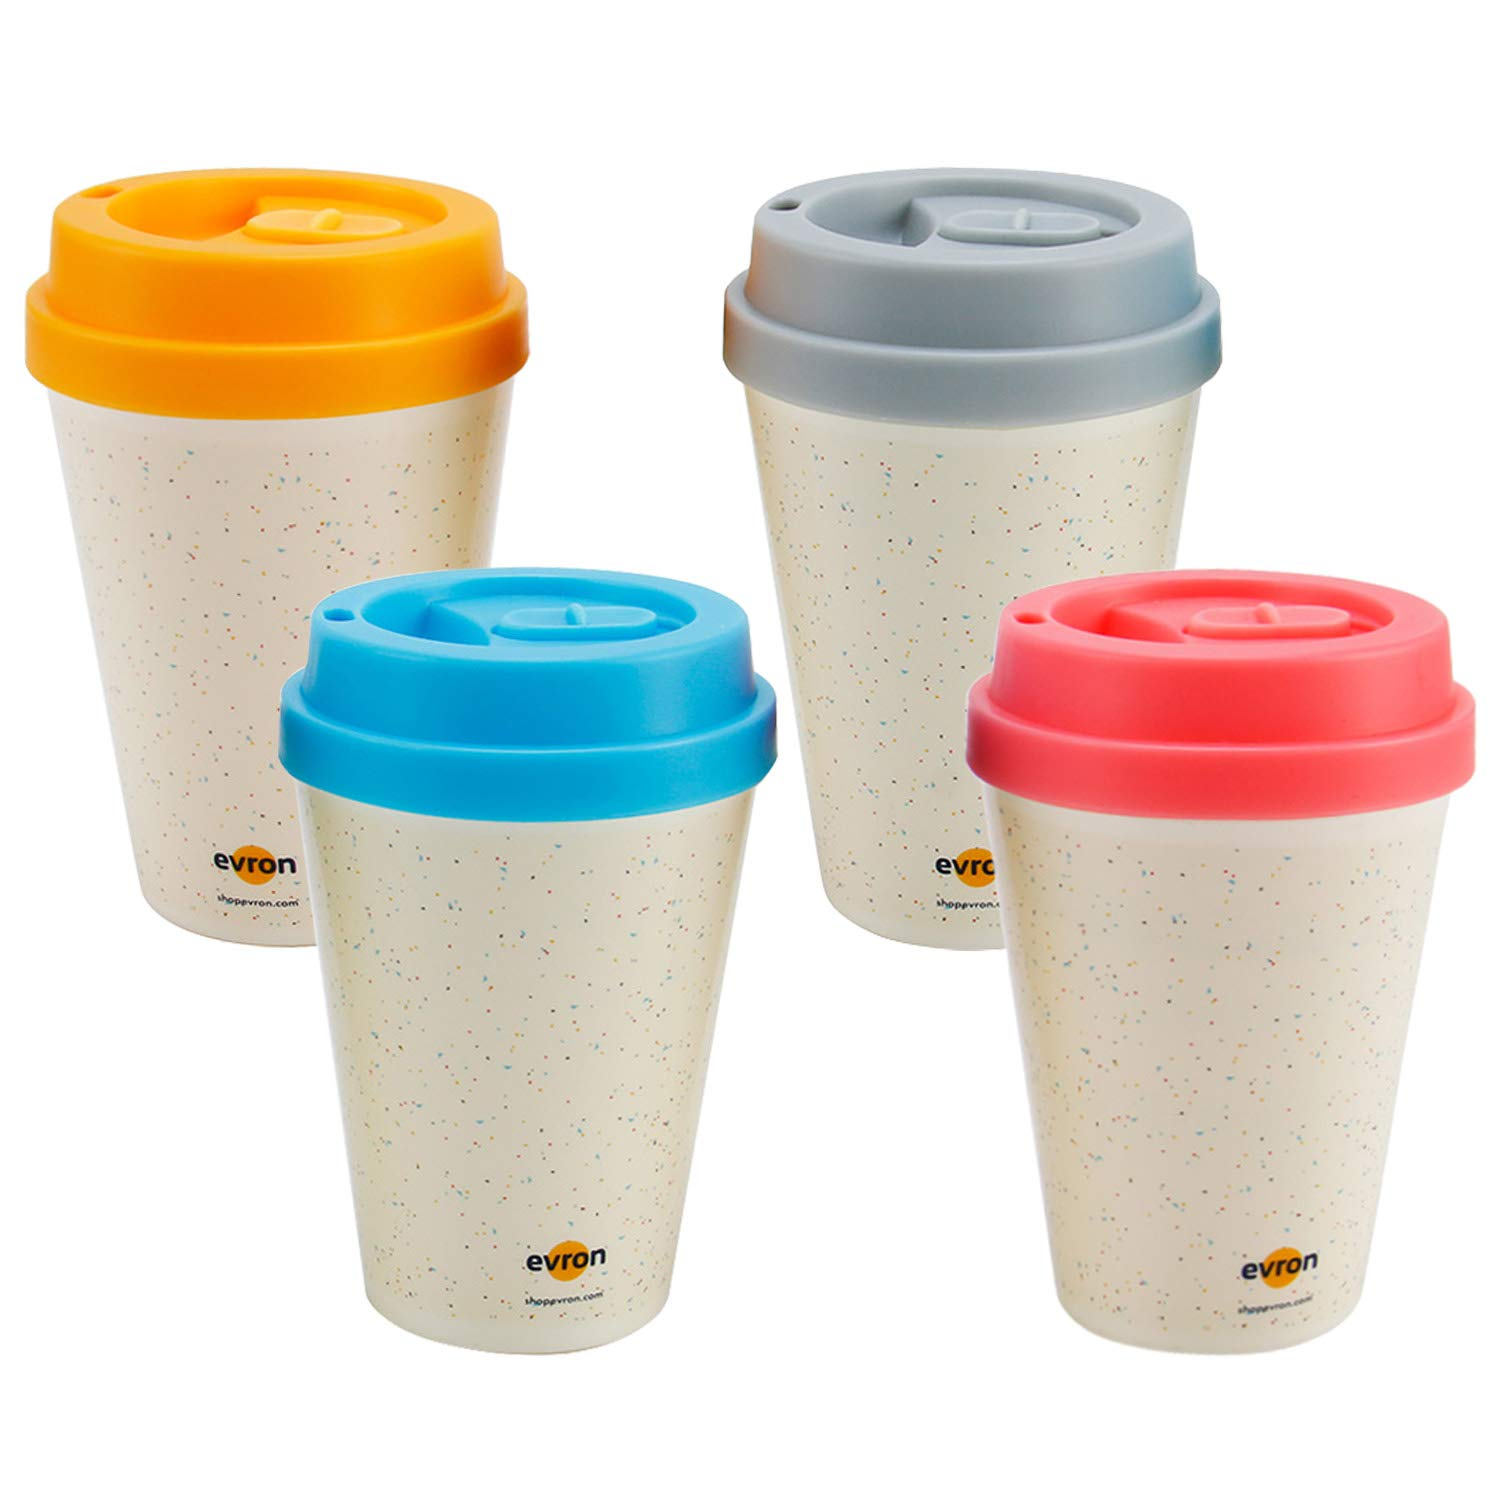 Spill Proof Coffee Mugs with Anti-Leak Locking Lid, Insulated Double-Wall for Hot and Cold Drinks (10oz 4 Pack)